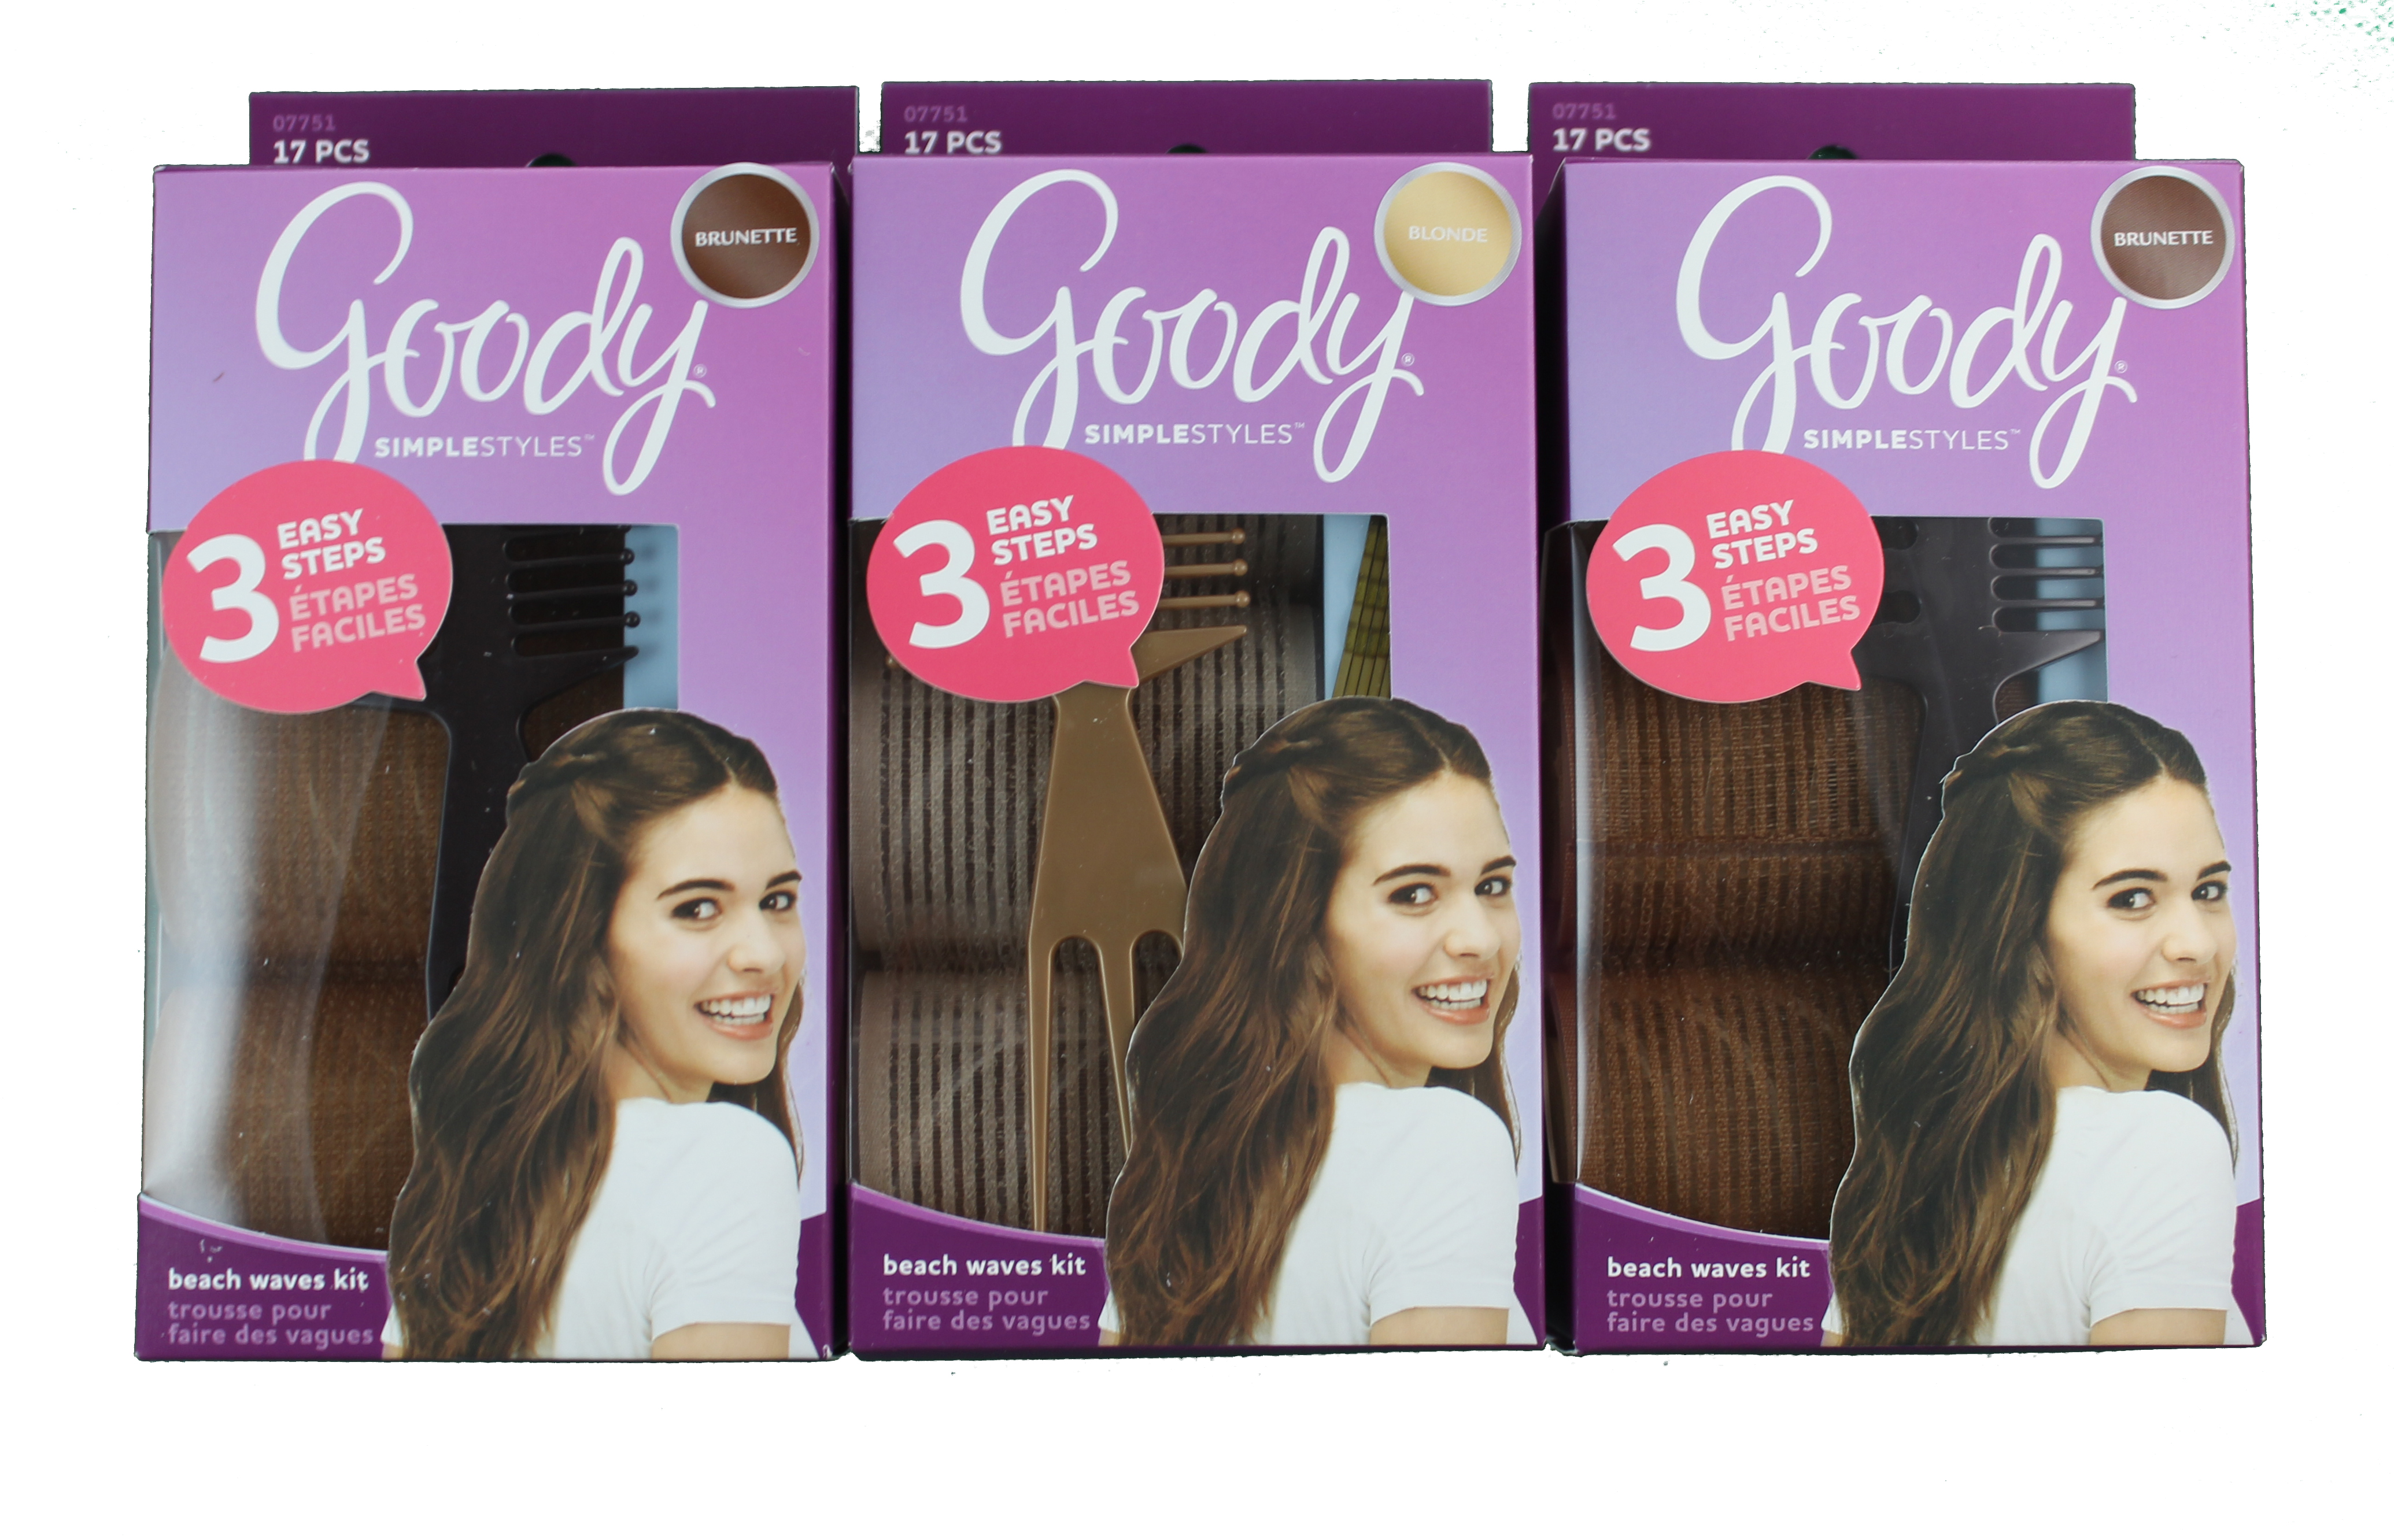 Goody Simple Styles Beach Waves Kit